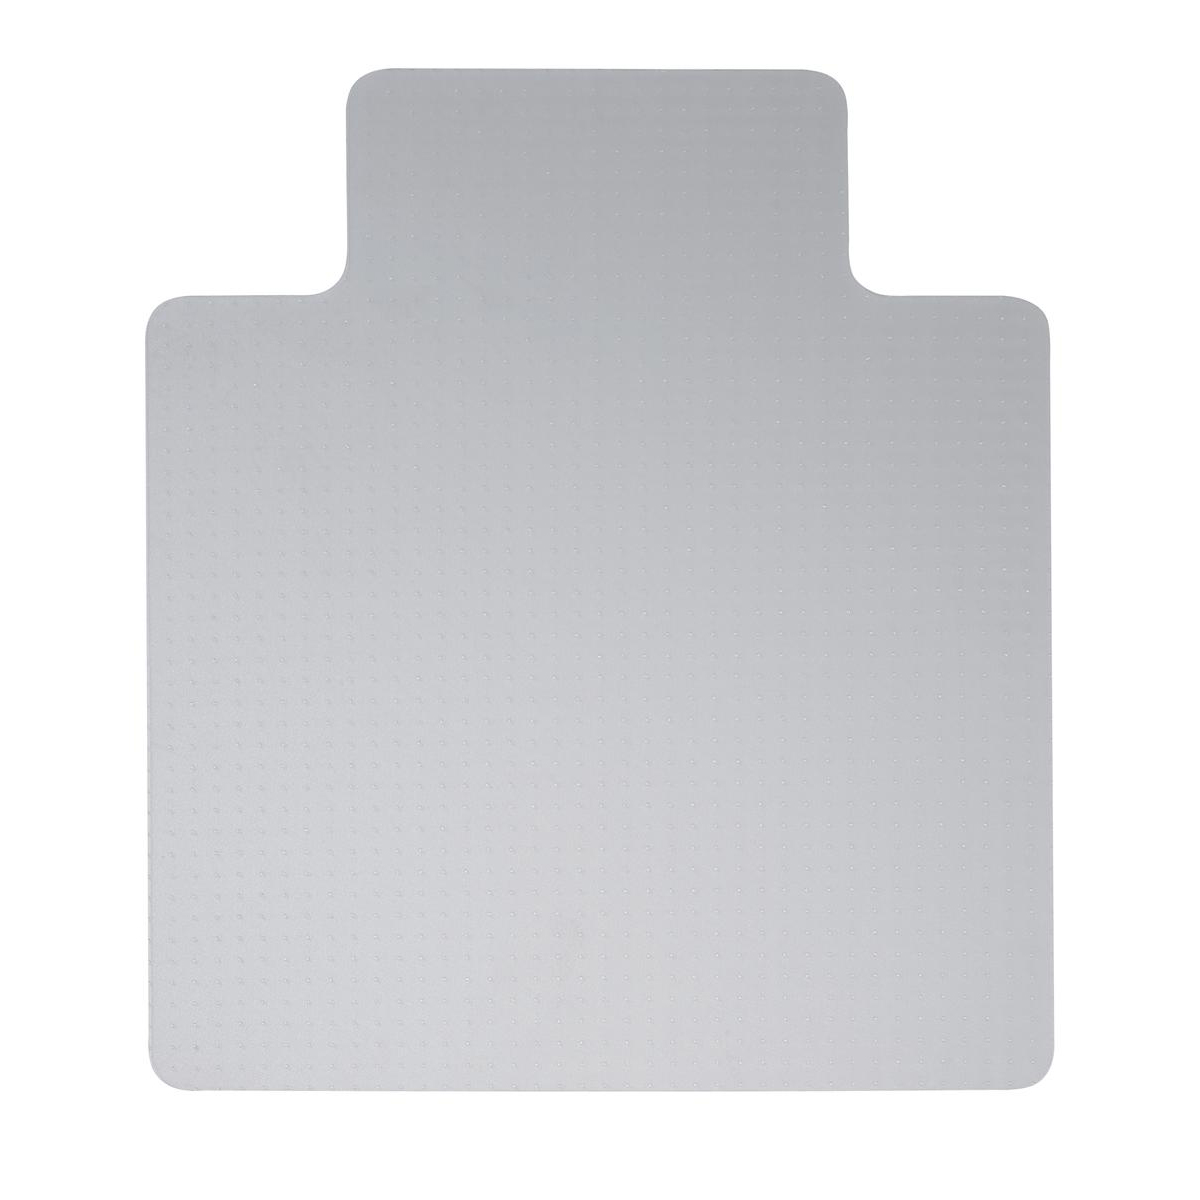 5 Star Office Chair Mat For Carpets Polycarbonate Lipped 1200x1340mm Clear